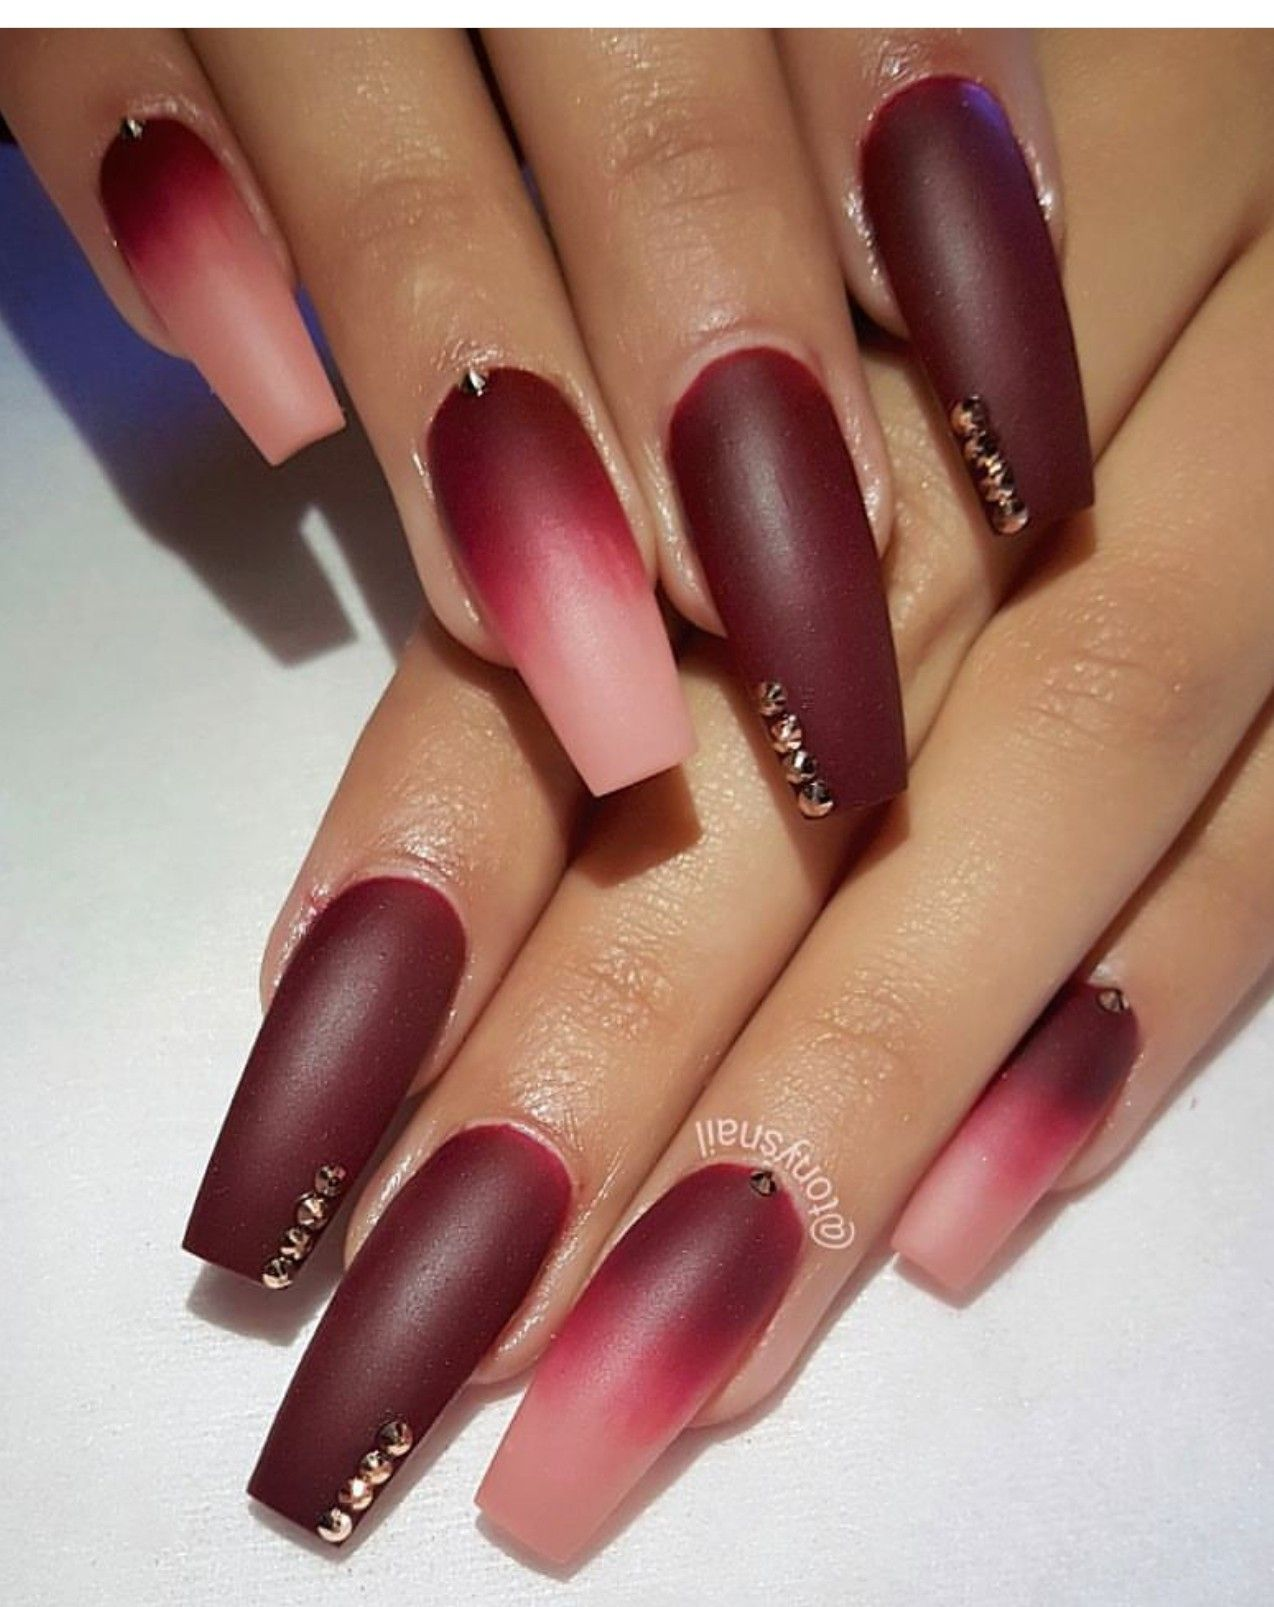 Pin by Sheena Grizzle on nail design Coffin nails